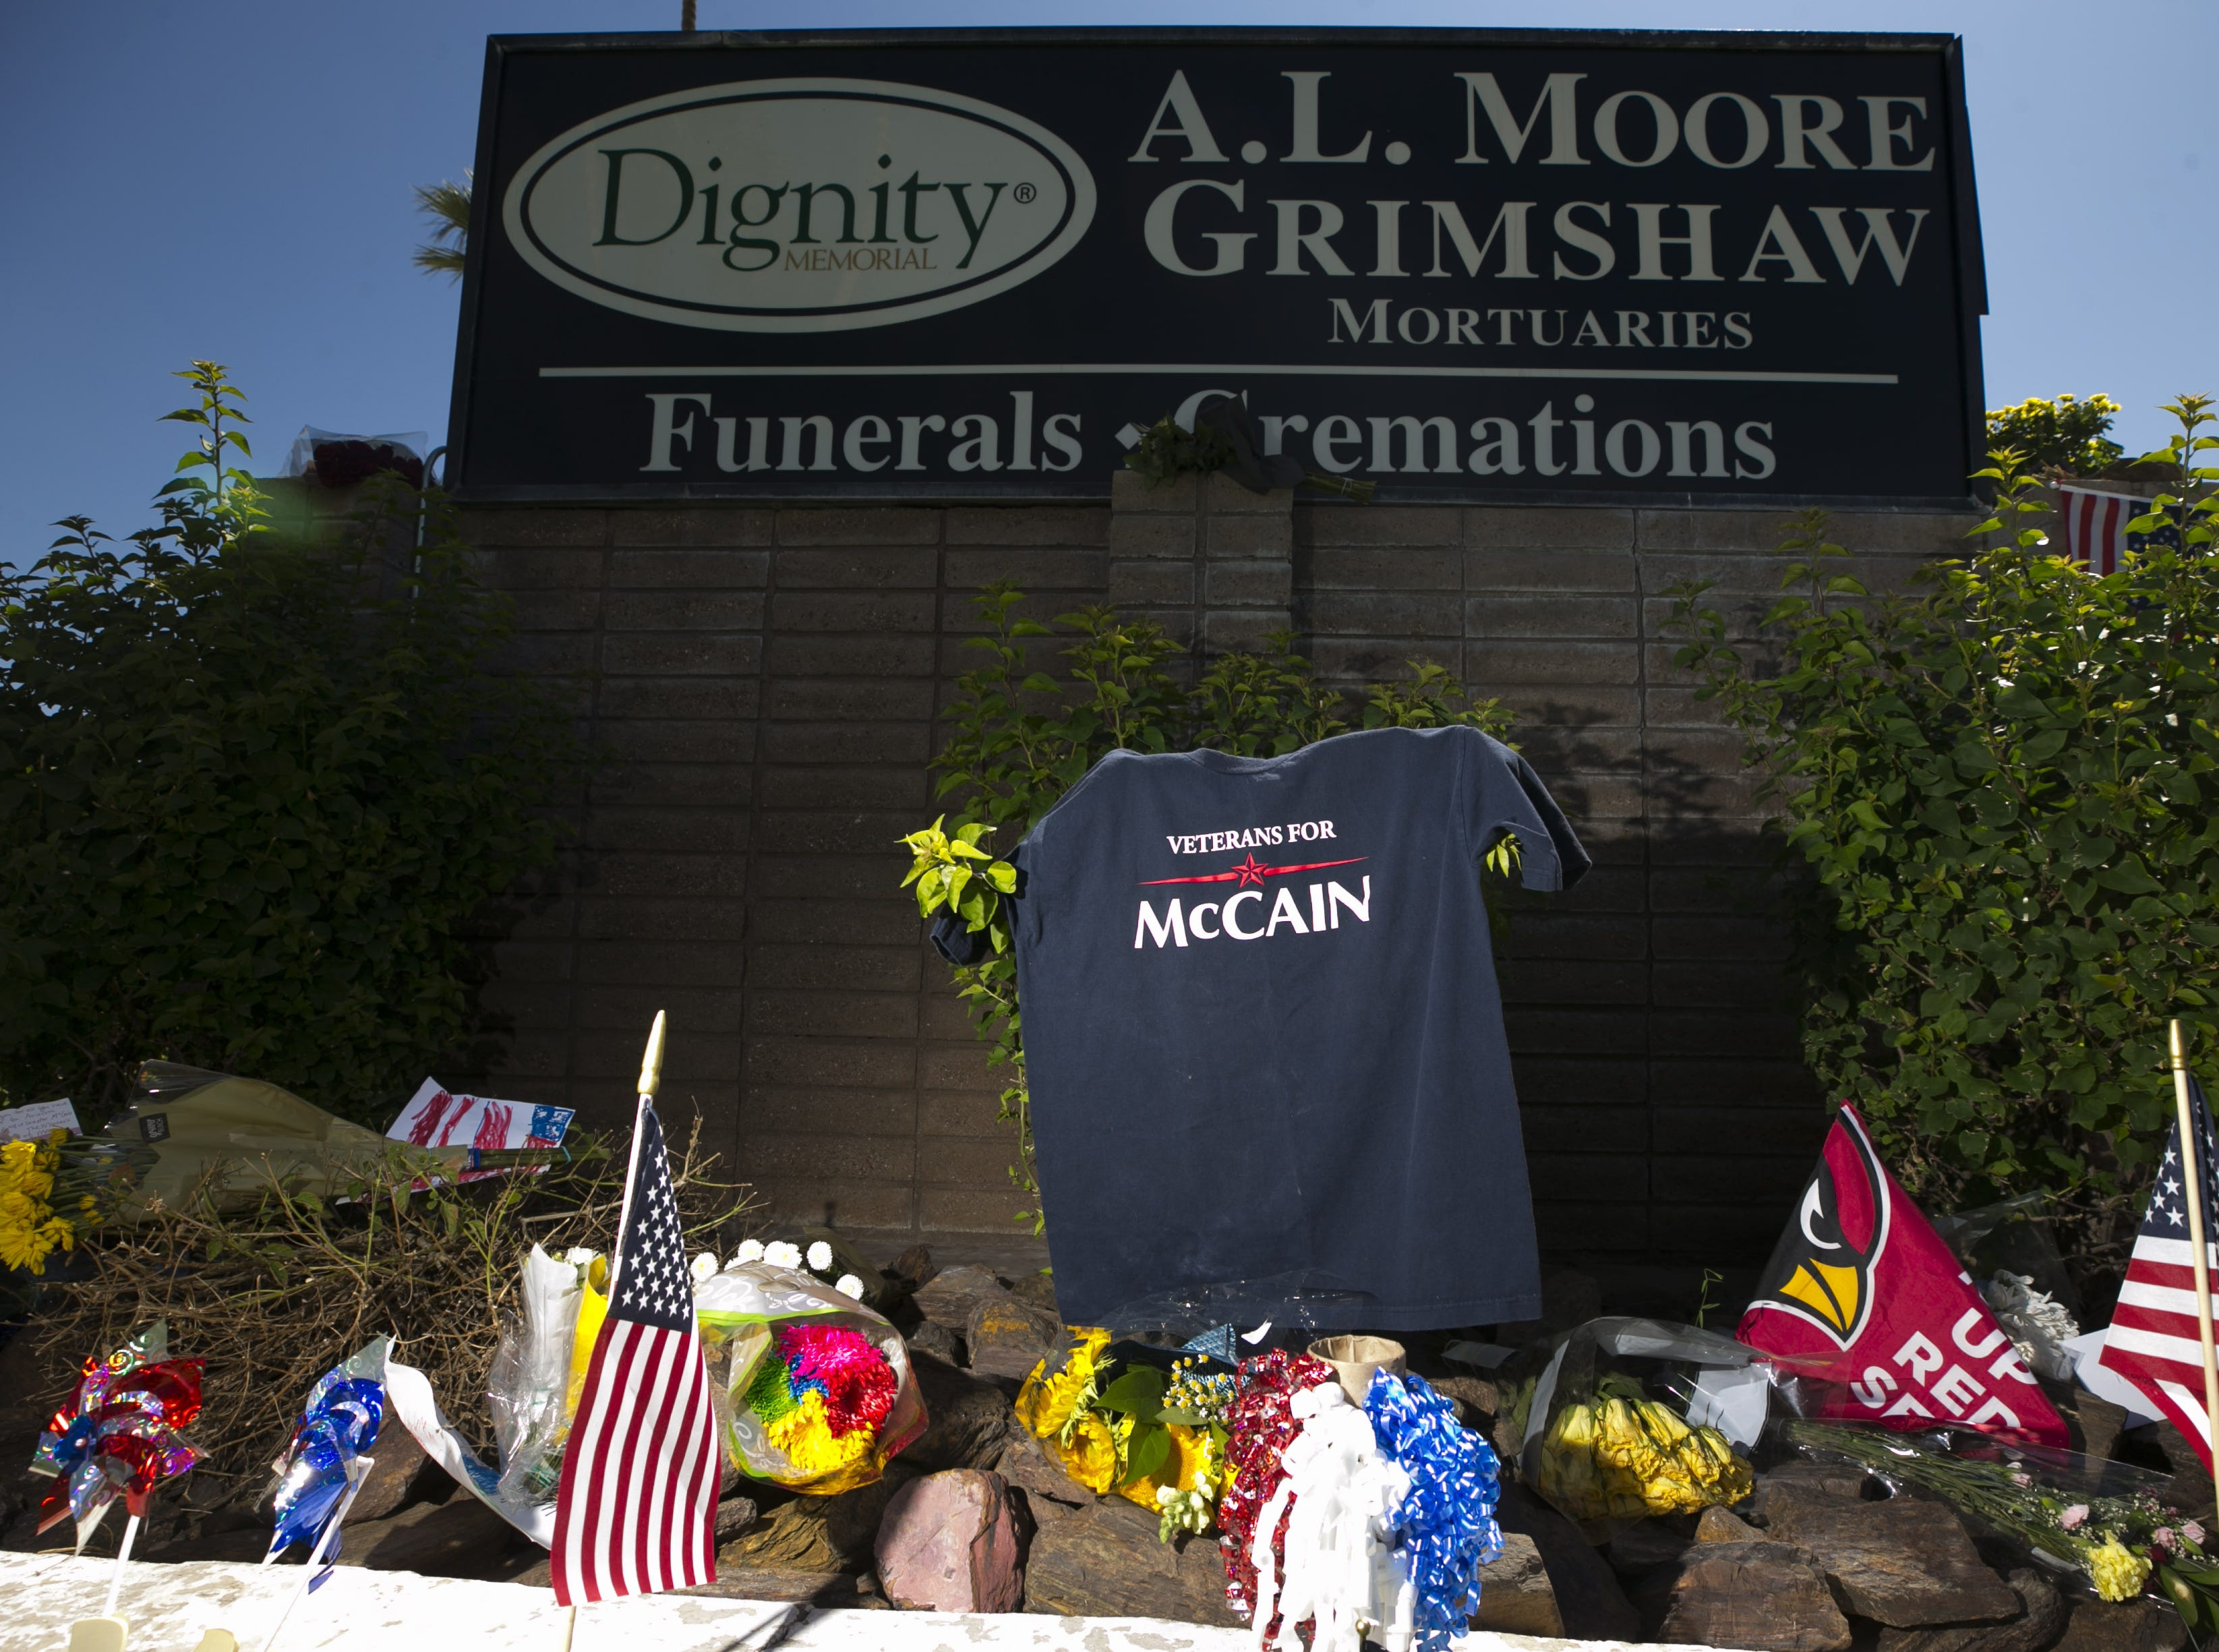 A memorial for Sen. John McCain at A.L. Moore-Grimshaw Mortuaries in Phoenix, on Aug. 27, 2018.